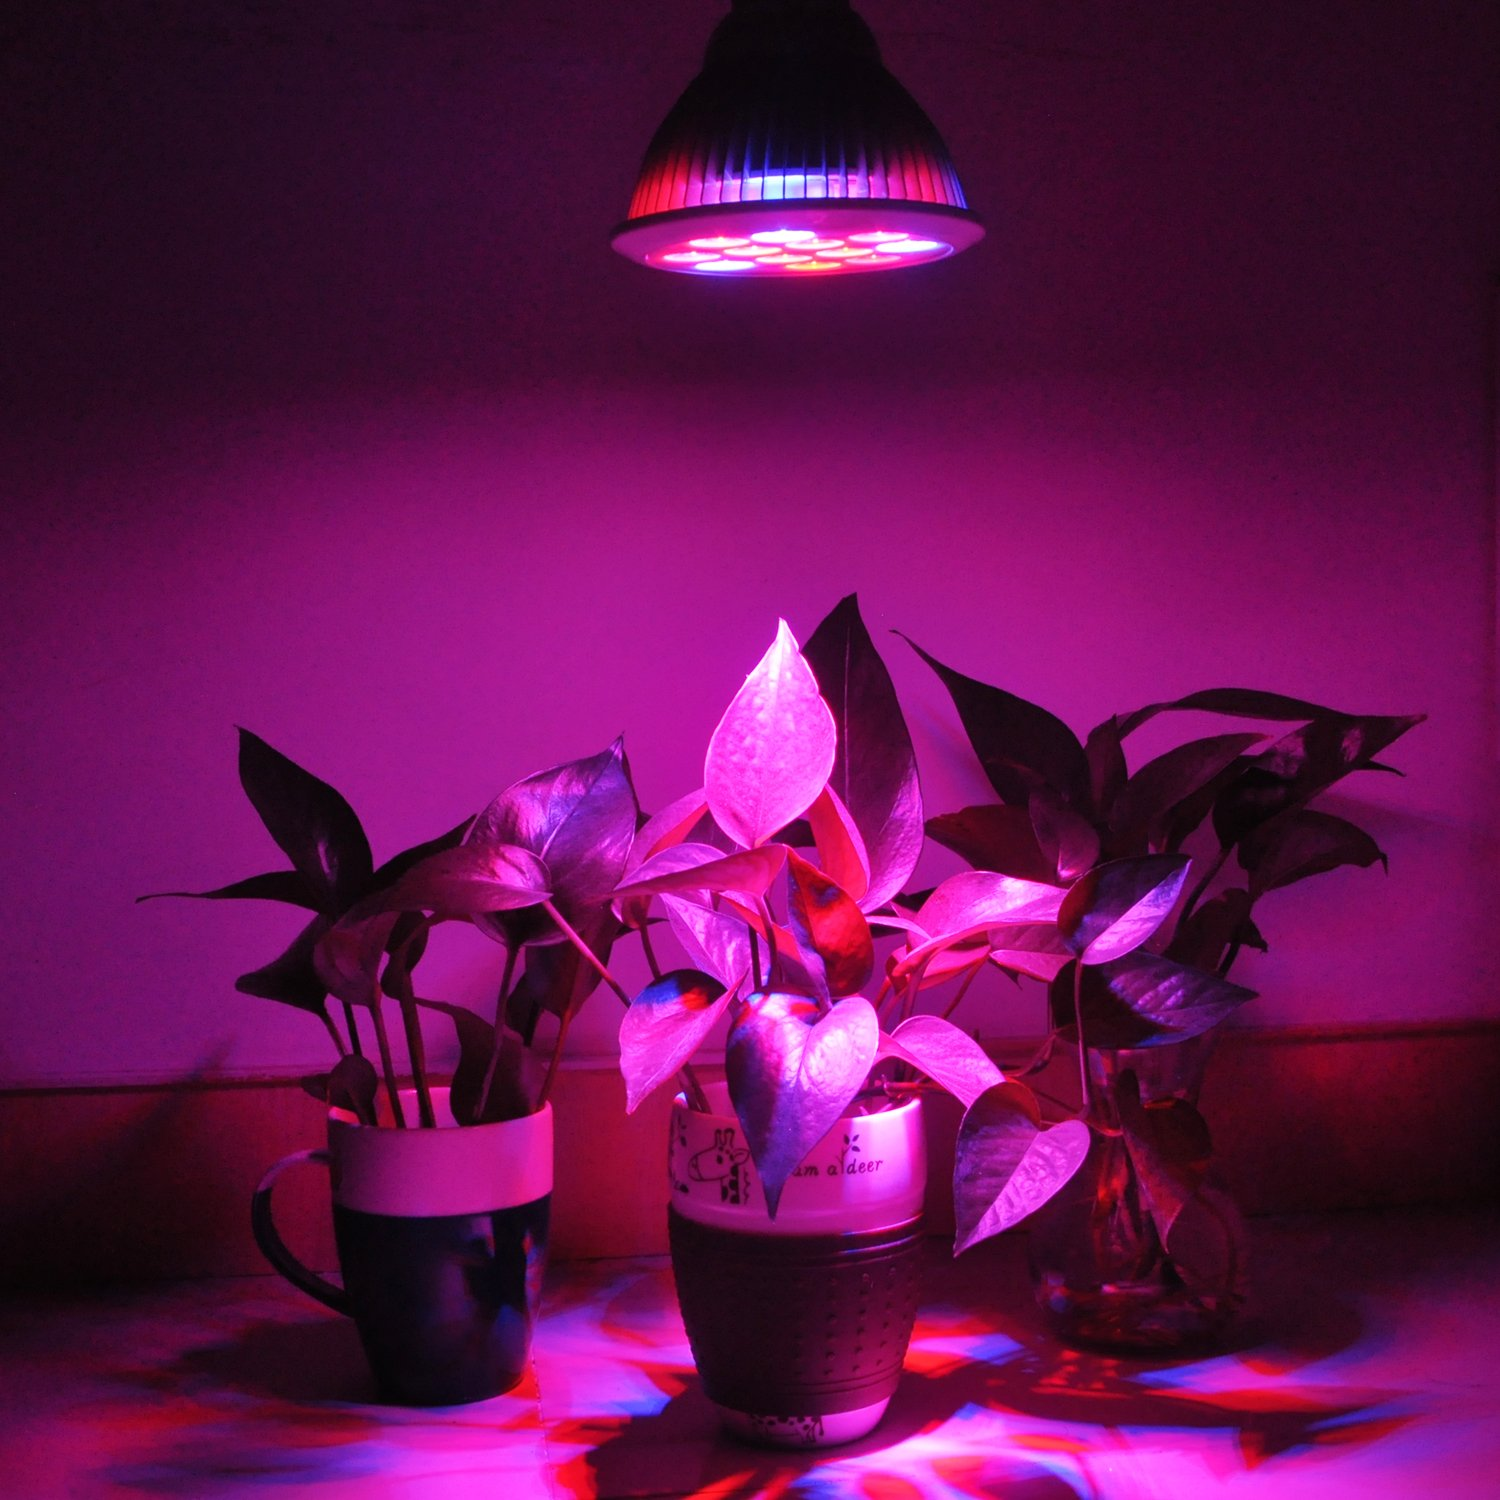 Amazon erligpowht led grow lights 24w plant lights e27 amazon erligpowht led grow lights 24w plant lights e27 growing bulbs 3 wavelengths tailored led grow lamps for garden greenhouse hydroponic and parisarafo Gallery